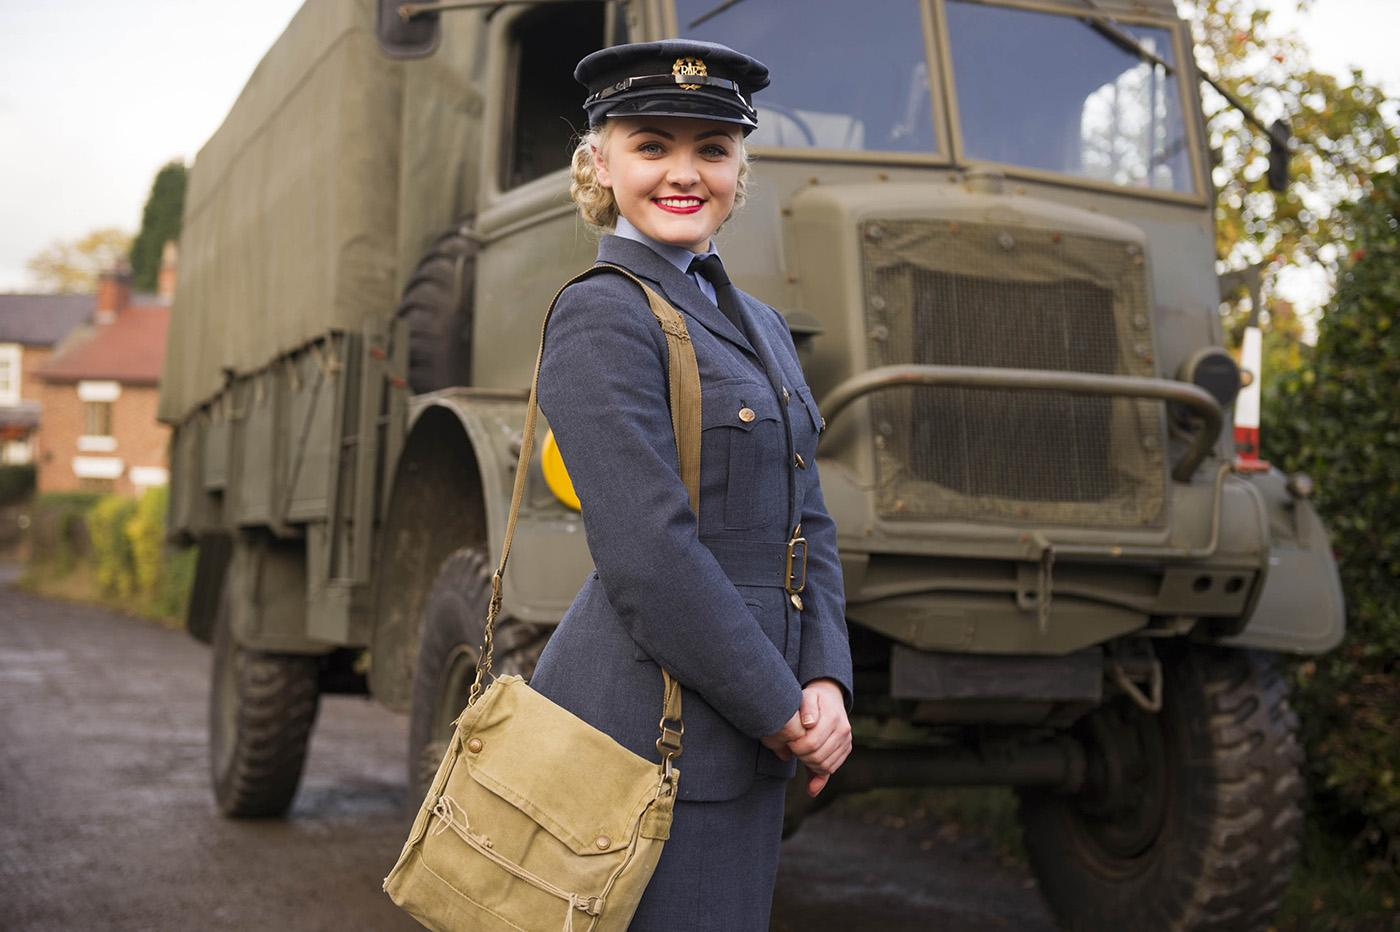 Jodie Hamblett as Jenny in 'Home Fires.' Photo: iTV and MASTERPIECE